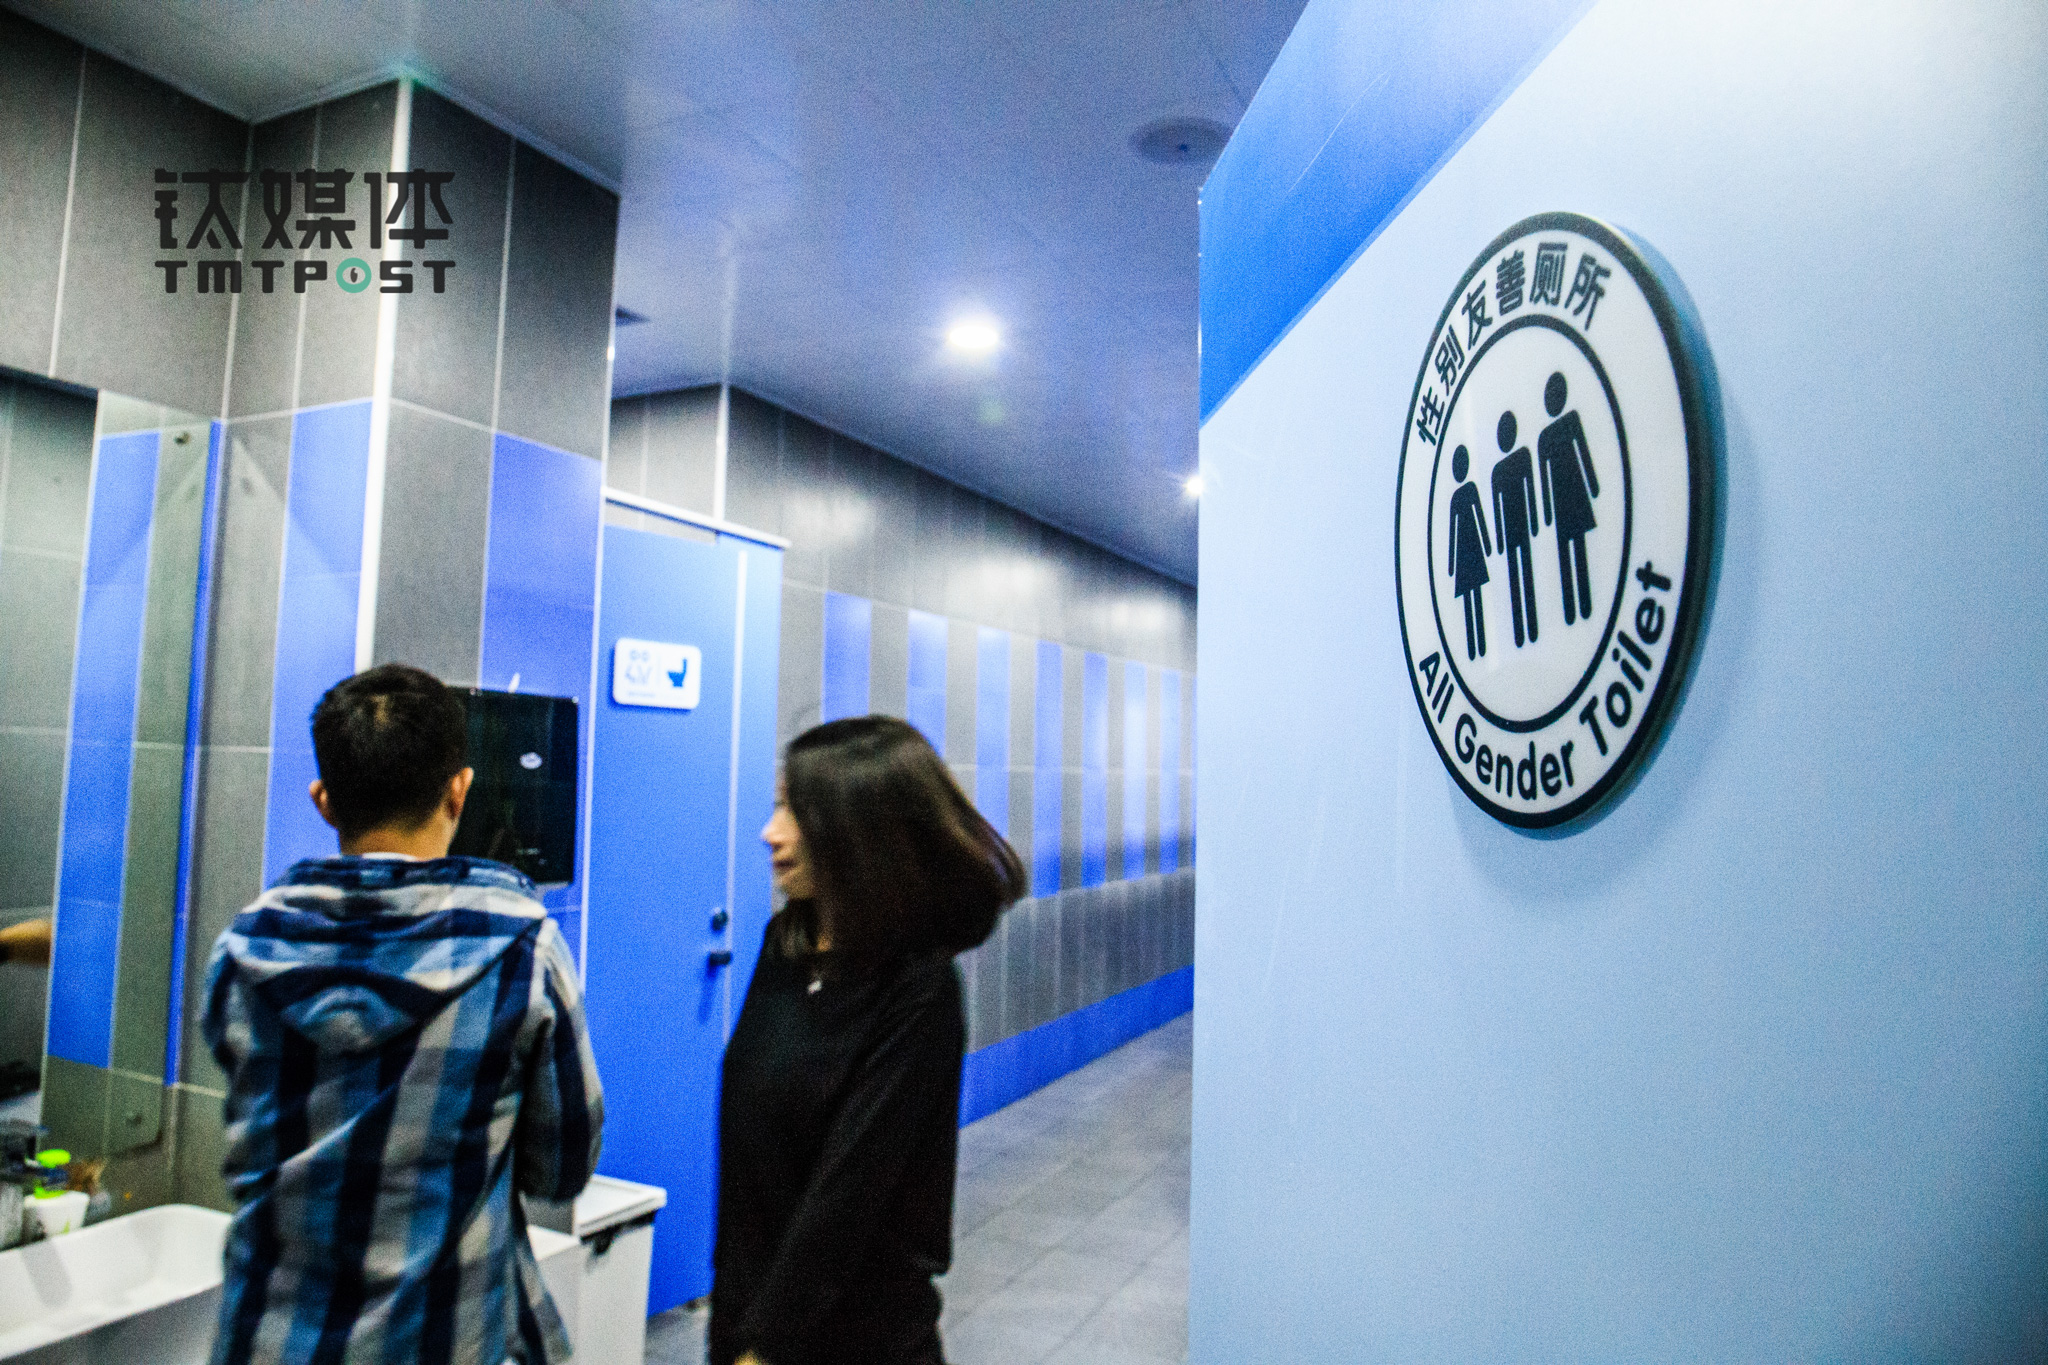 Blued's HQ has all-gender toilets that are shared by both male and female staff. They are accustomed to this kind of unisex bathrooms, believing that it's a way to promote gender equality and a kind act for transgenders.